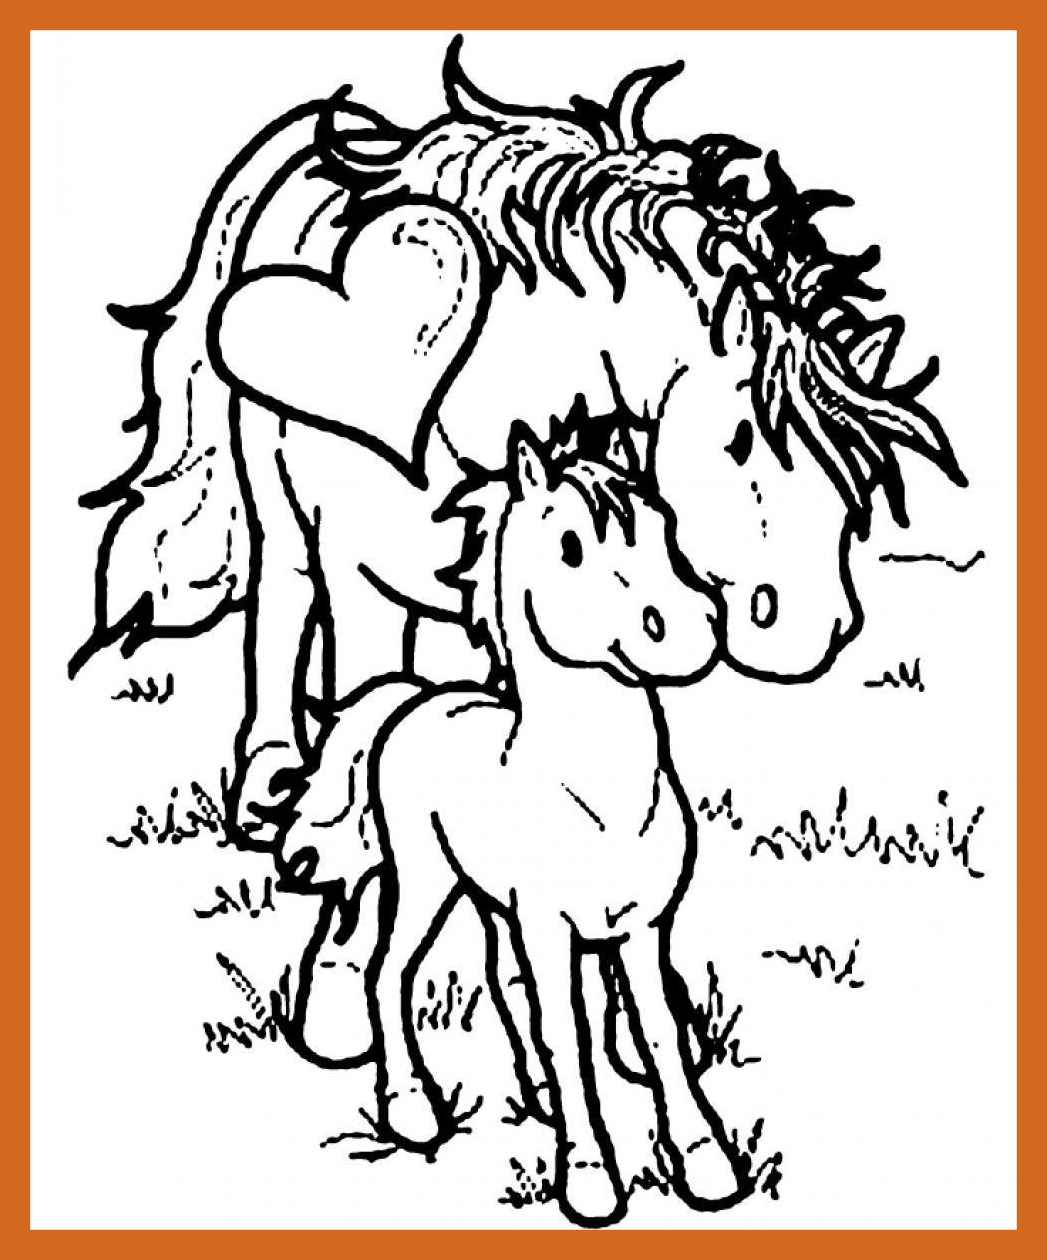 1047x1260 Astonishing Printable Horse Coloring Page Pict Of Morgan Concept